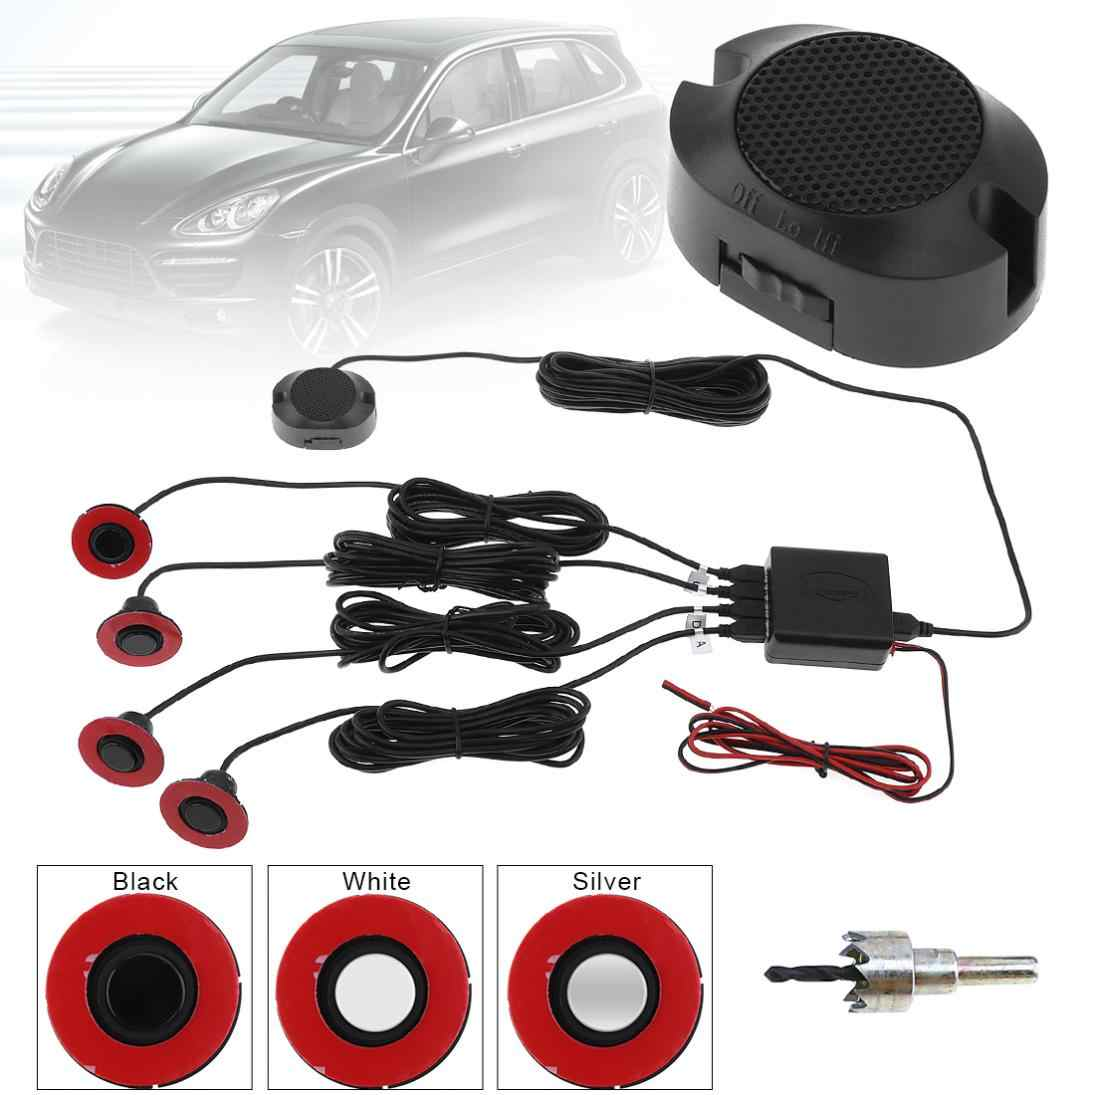 4 Parking Sensors 16.5mm 12V Car Original Flat Parking Sensor Car Video Parking Sensor Reverse Backup Radar Sound Buzzer Alarm